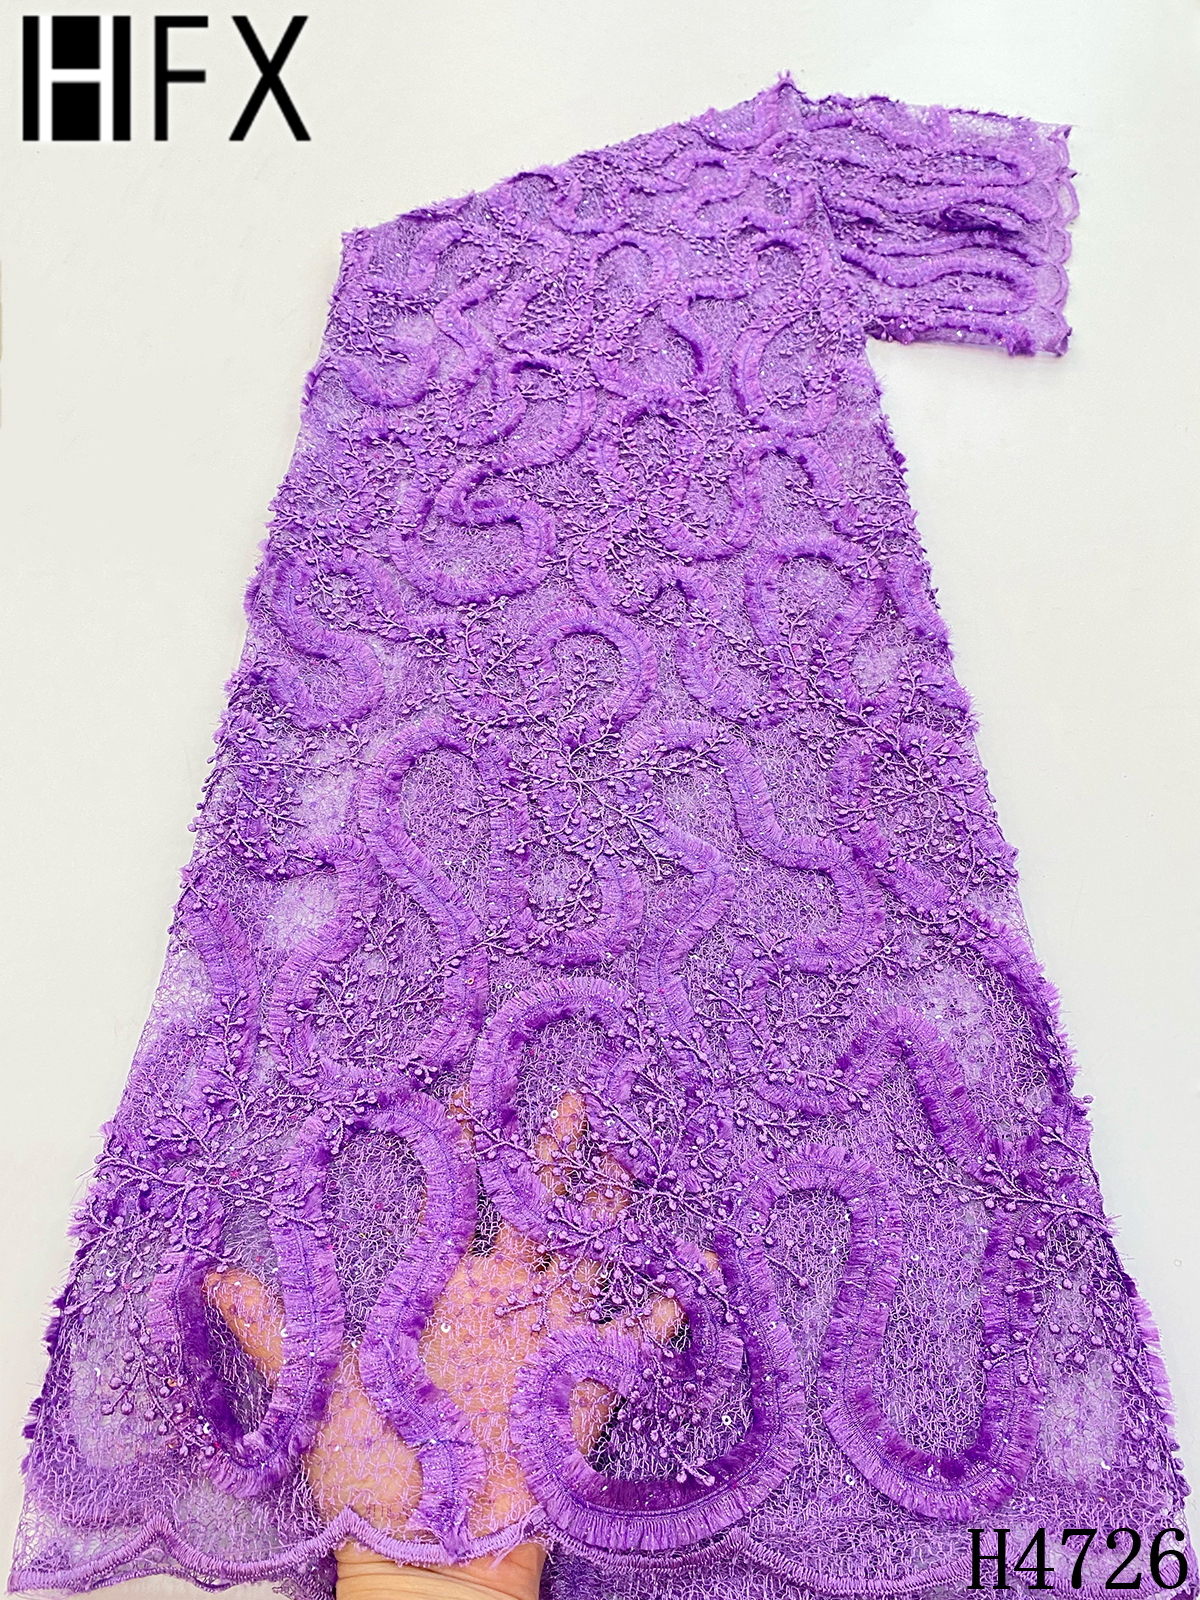 HFX Latest African Laces 2021 High Quality Tulle Mesh Lace Fabric Purple Nigerian Embroidered Bridal Lace Fabric Wedding F4726